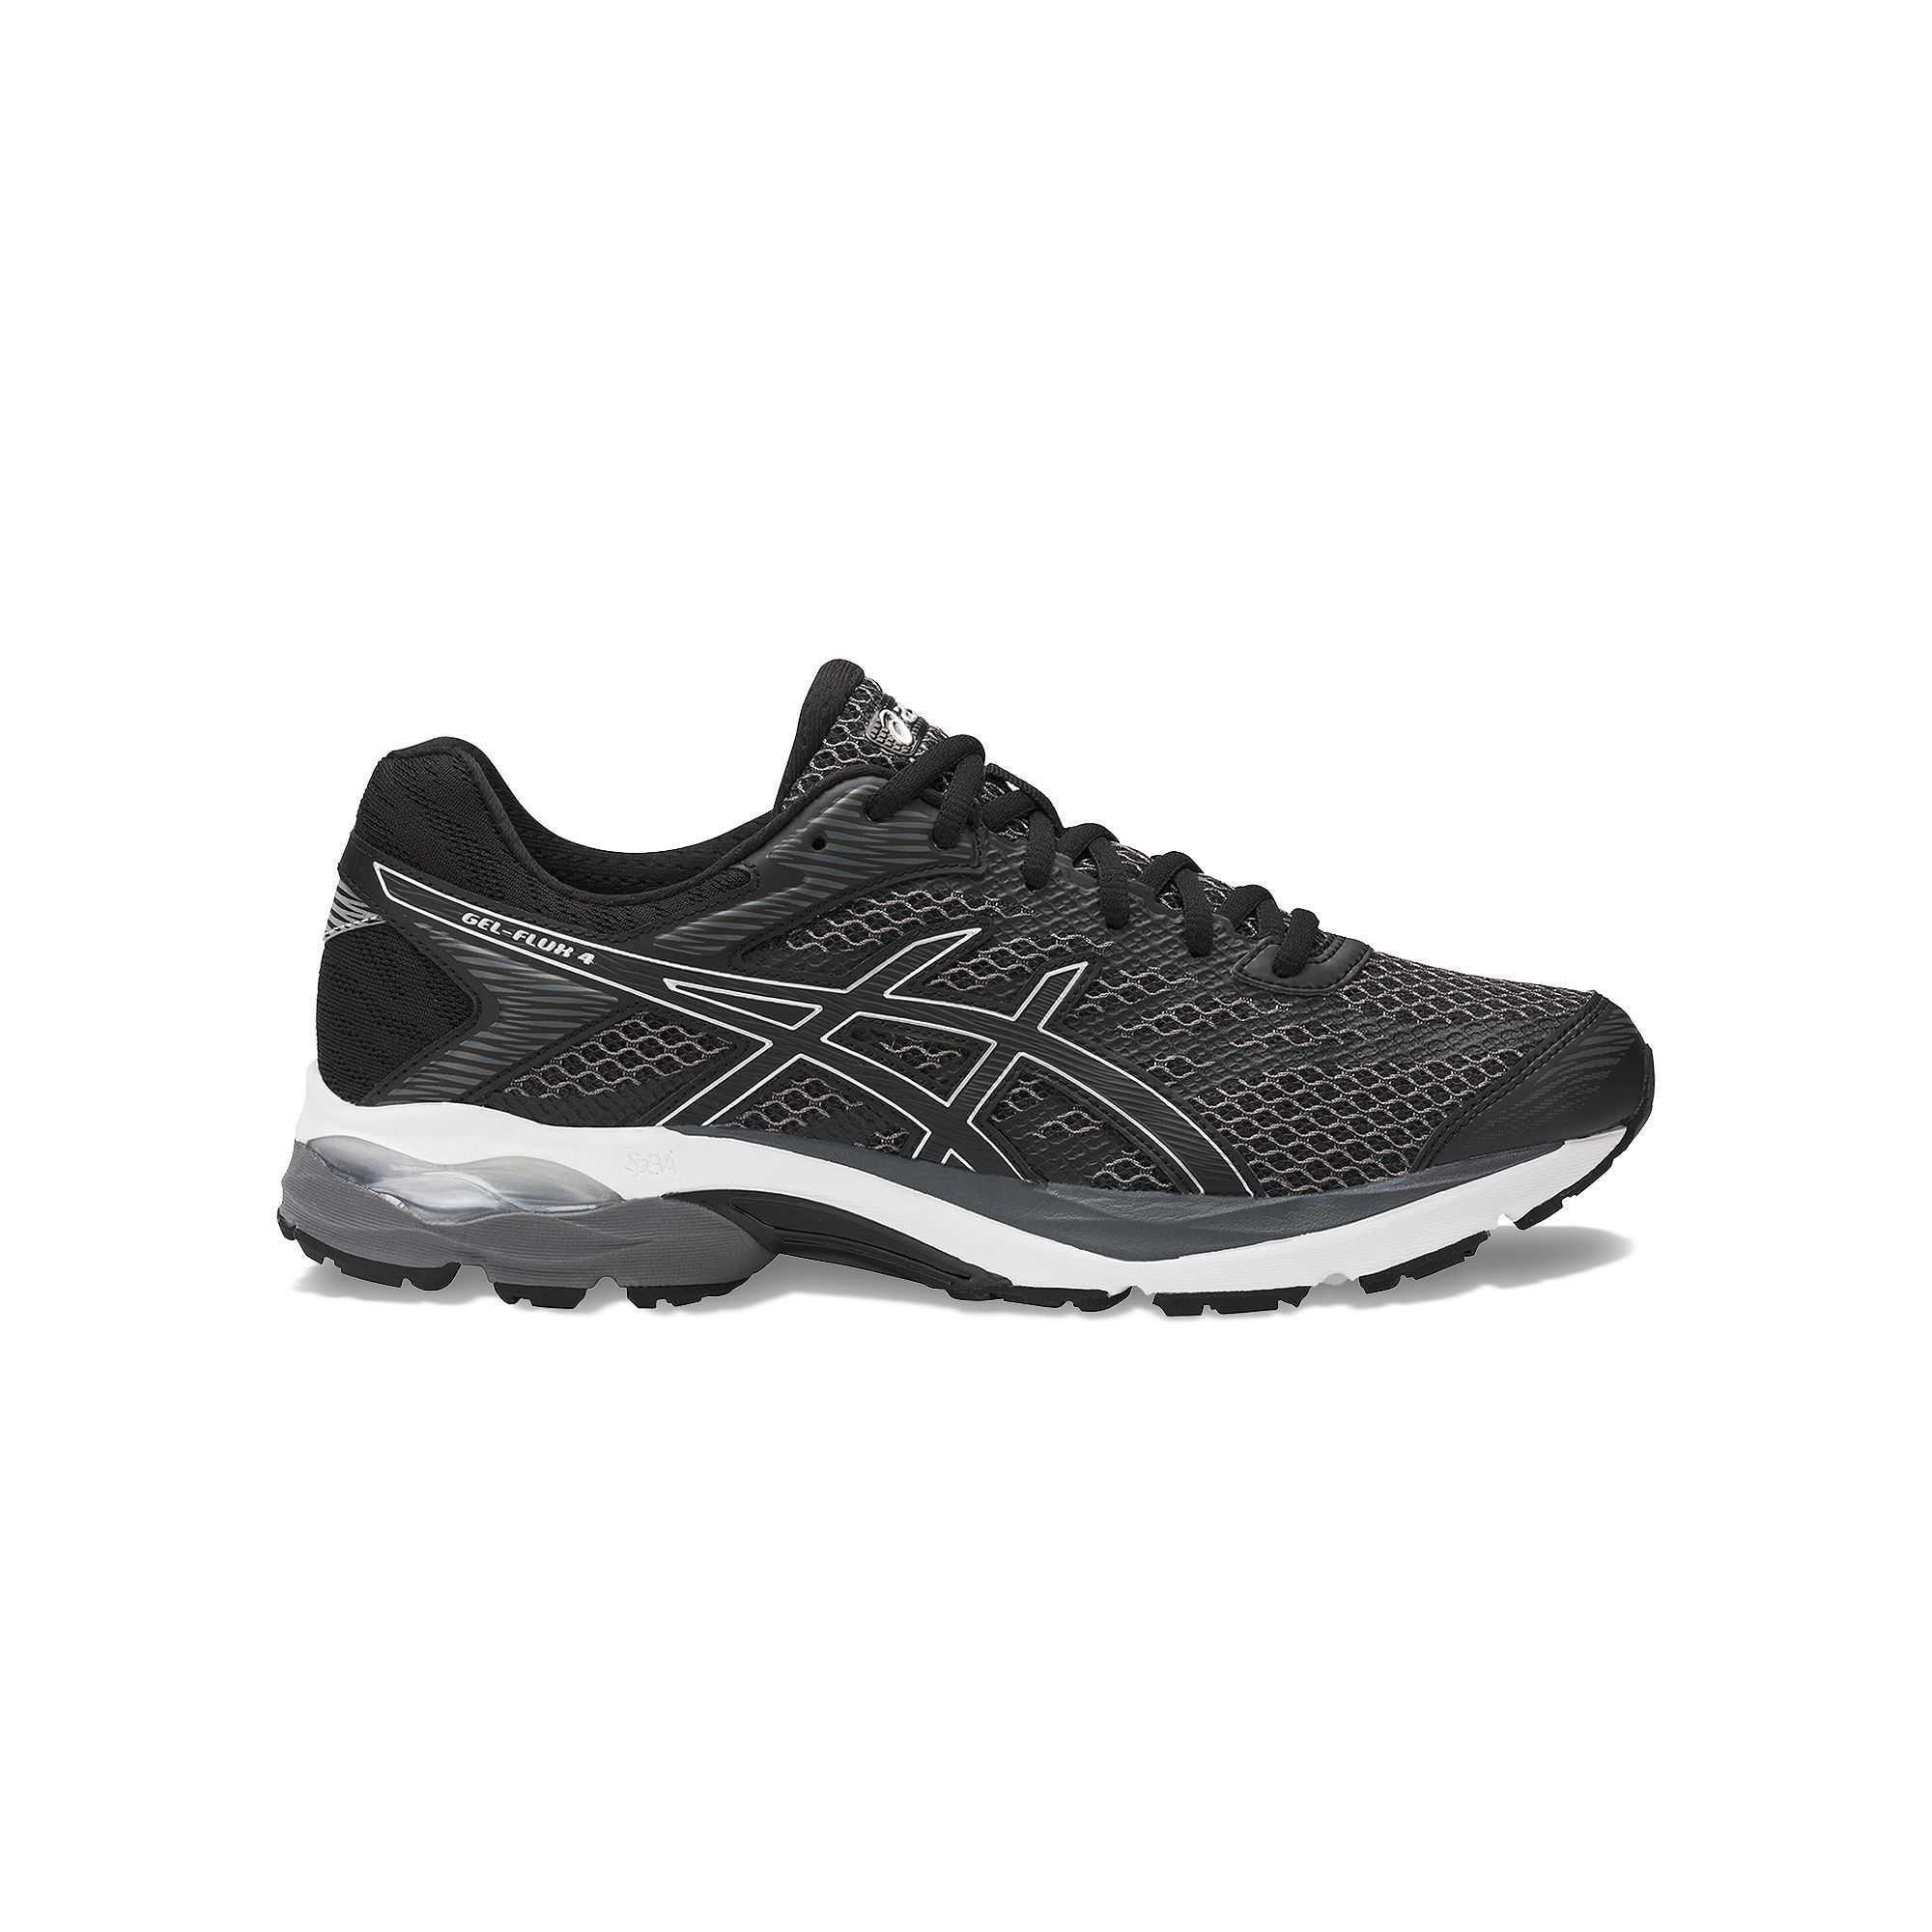 2459754a5e9 ASICS GEL-Flux 4 Men s Running Shoes